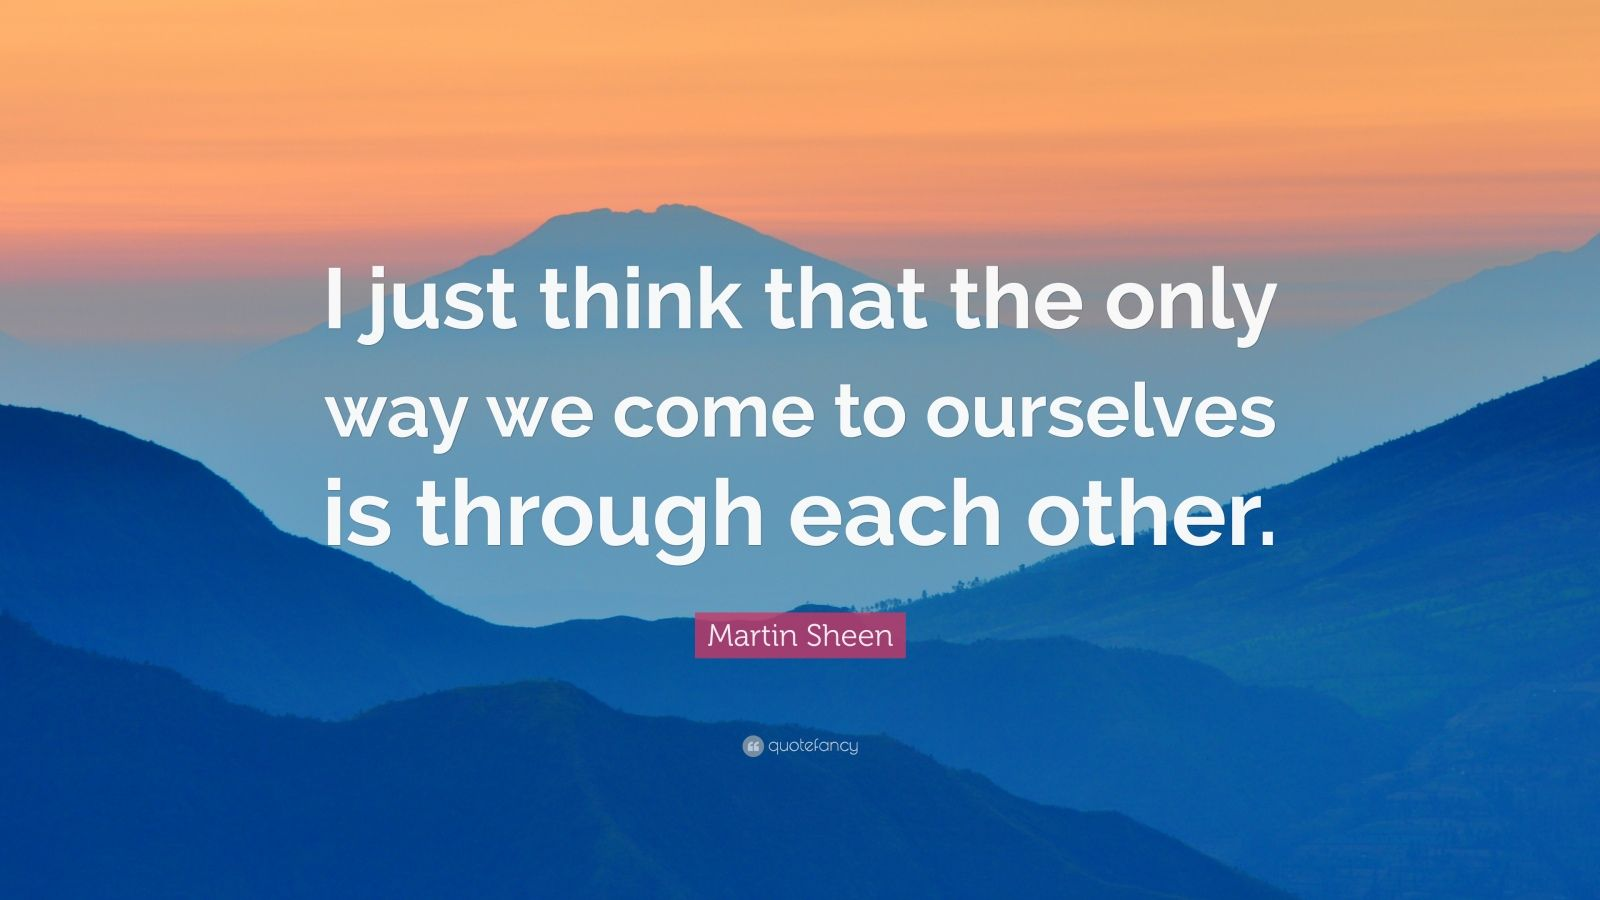 """Martin Sheen Quote: """"I just think that the only way we come to ourselves is through each other."""""""